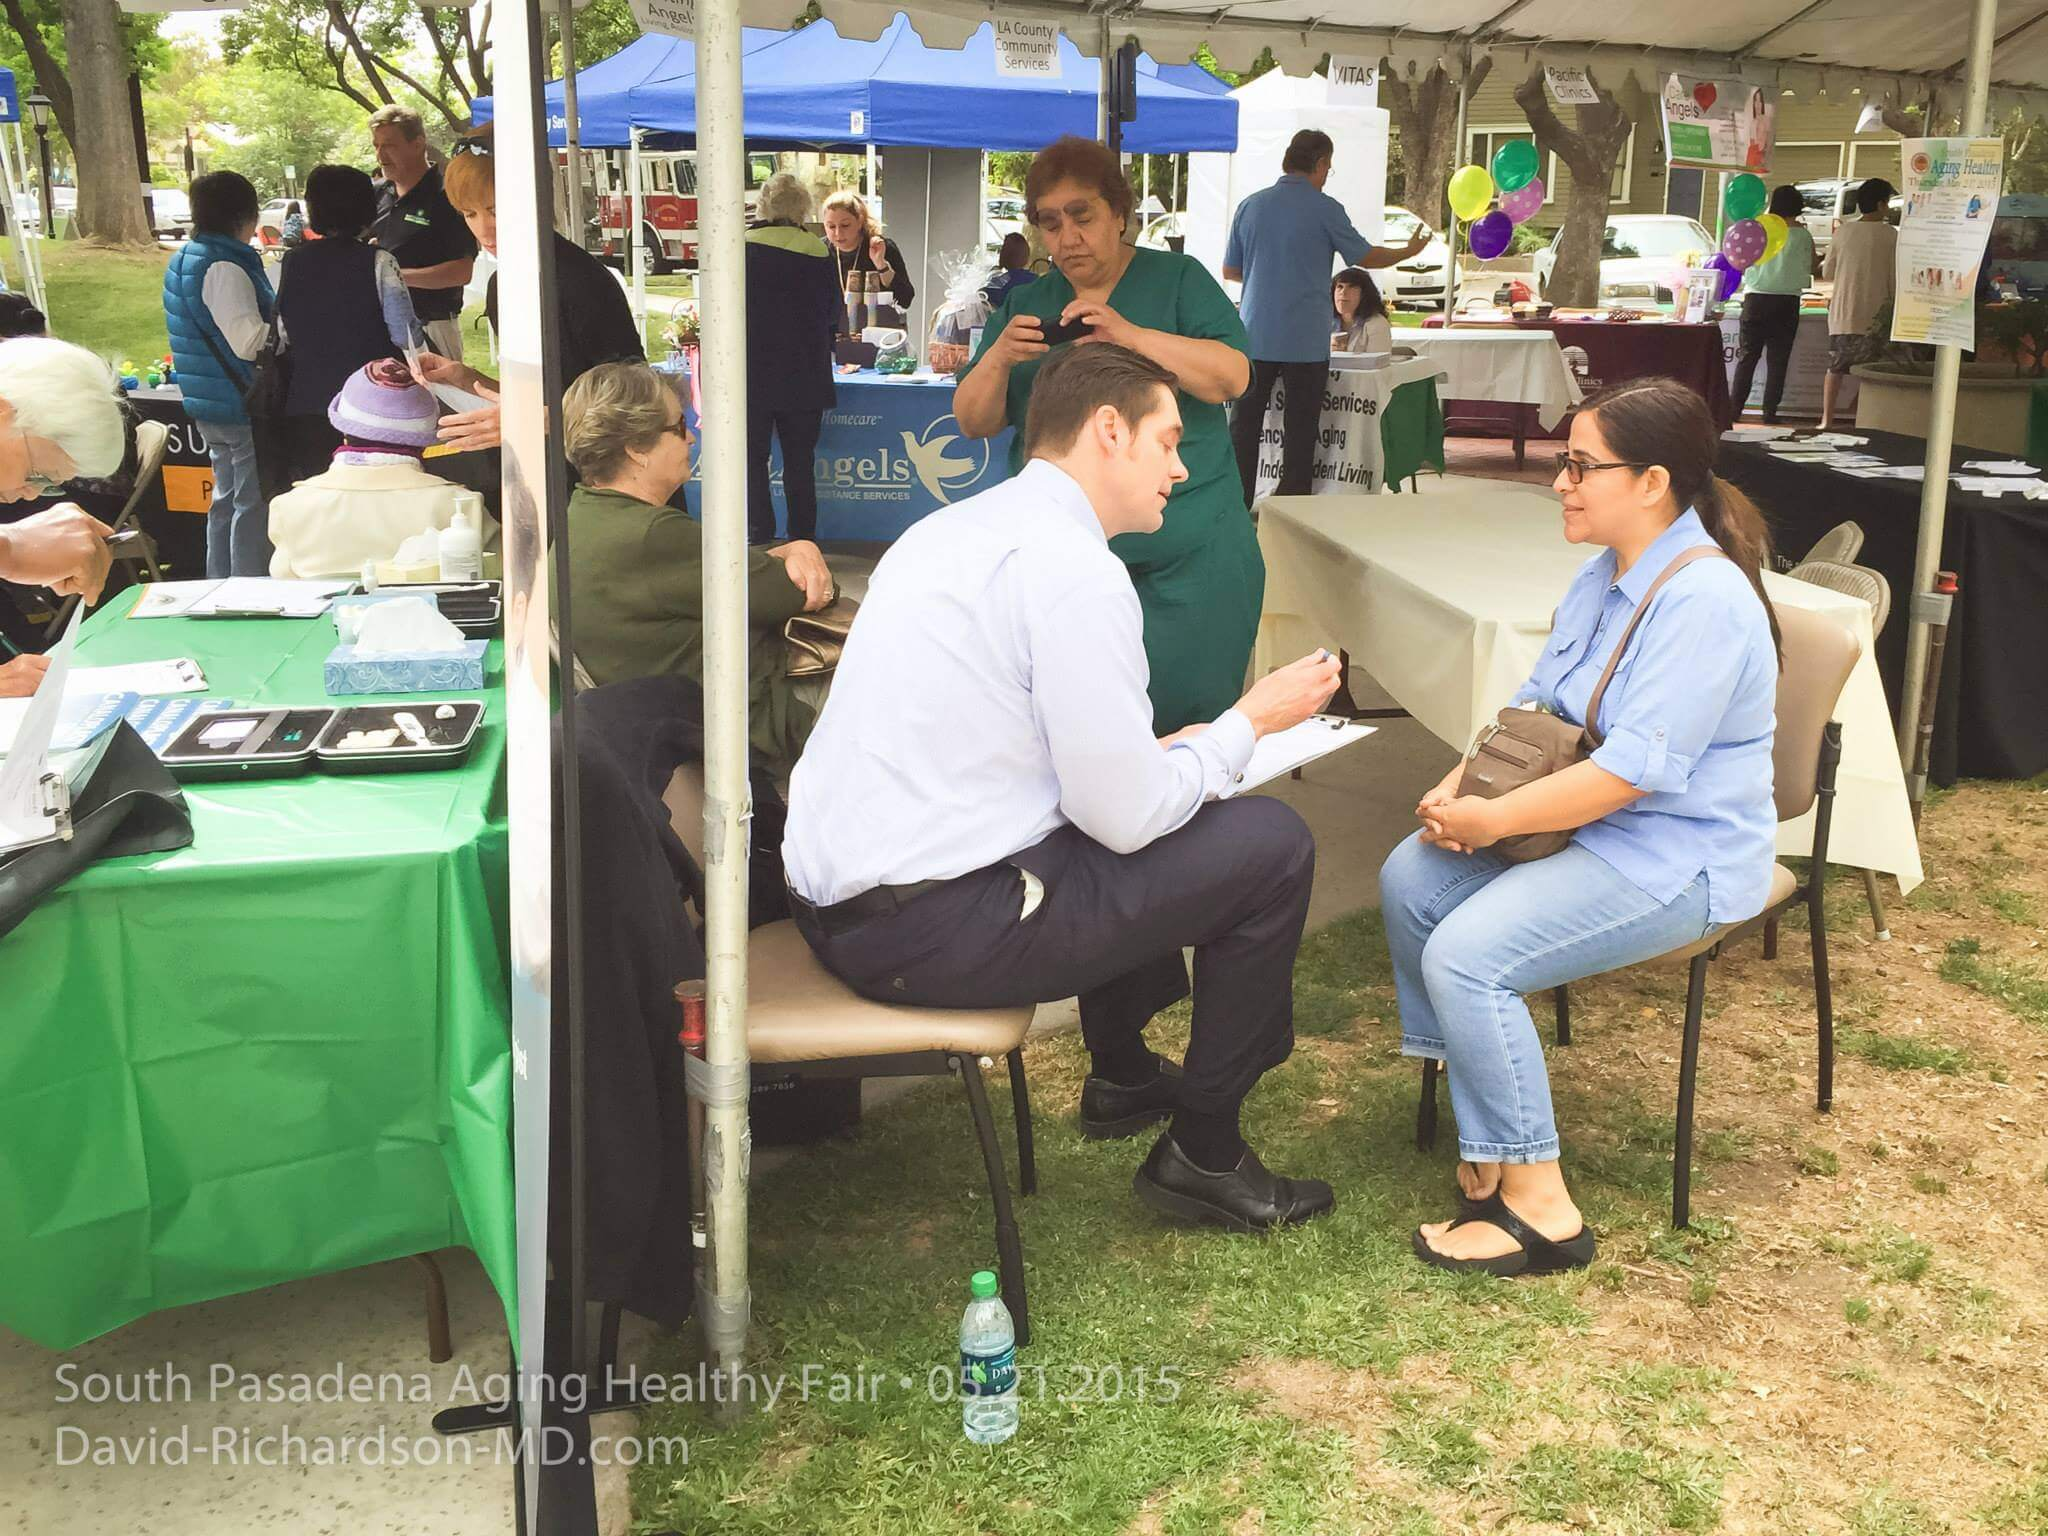 San Marino Eye at South Pasadena Aging Healty Fair 2